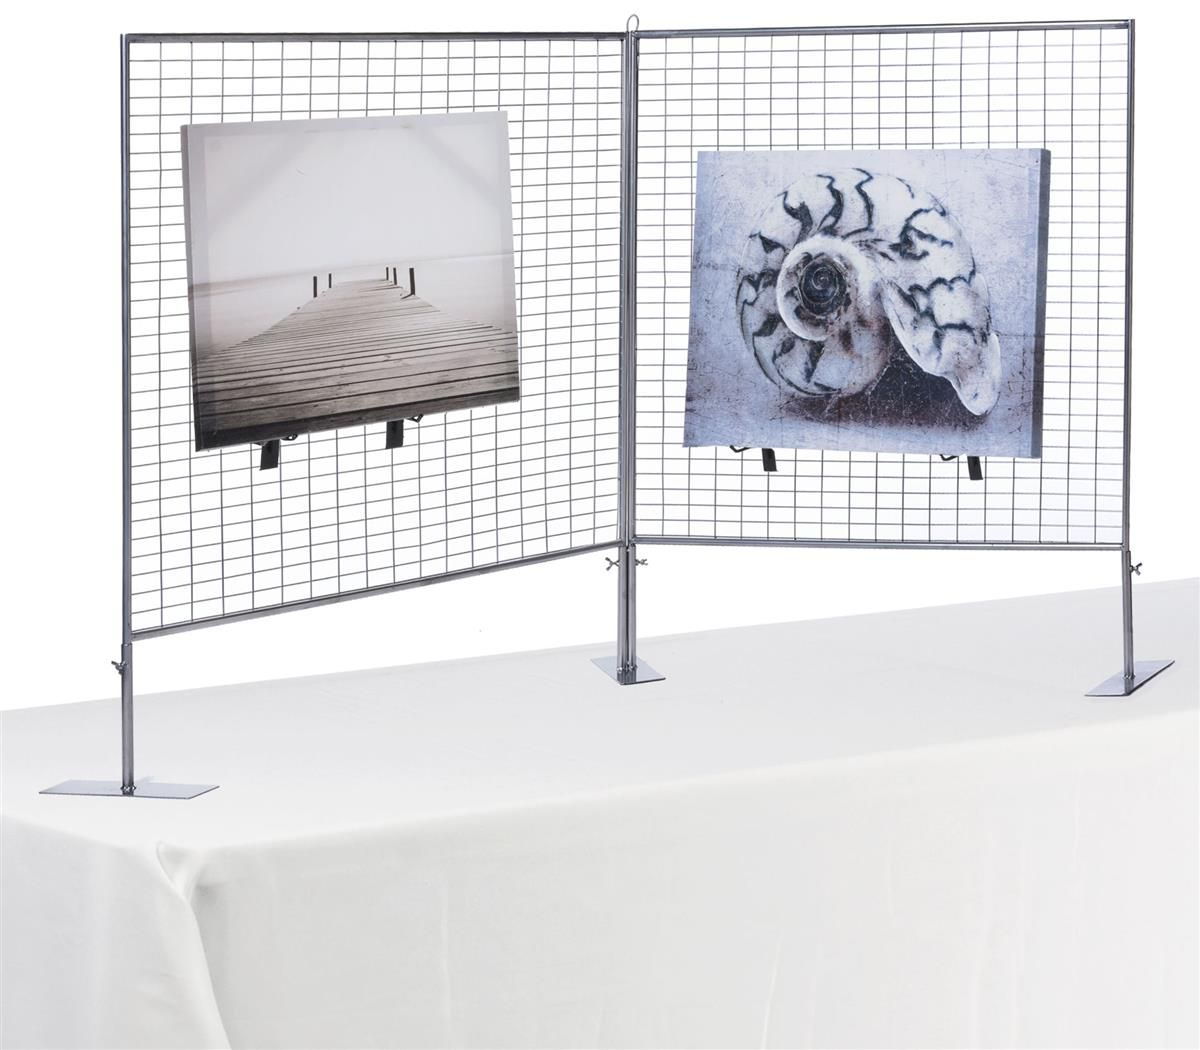 Art Display Grid For Countertop V Shaped 2 3 X 3 Panels